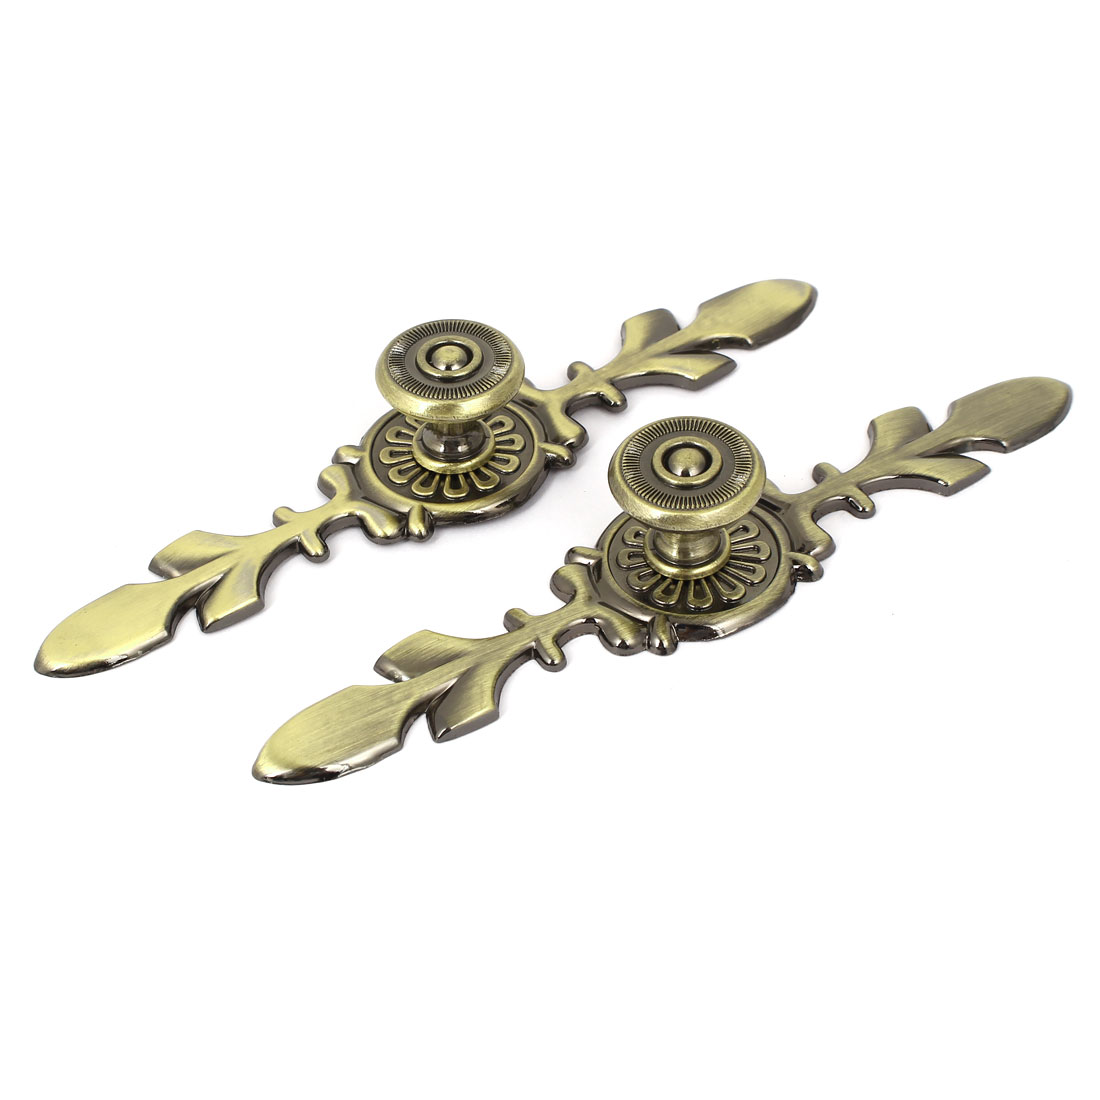 Cabinet Drawer Flower Design Pull Handle Bronze Tone 2 Pcs